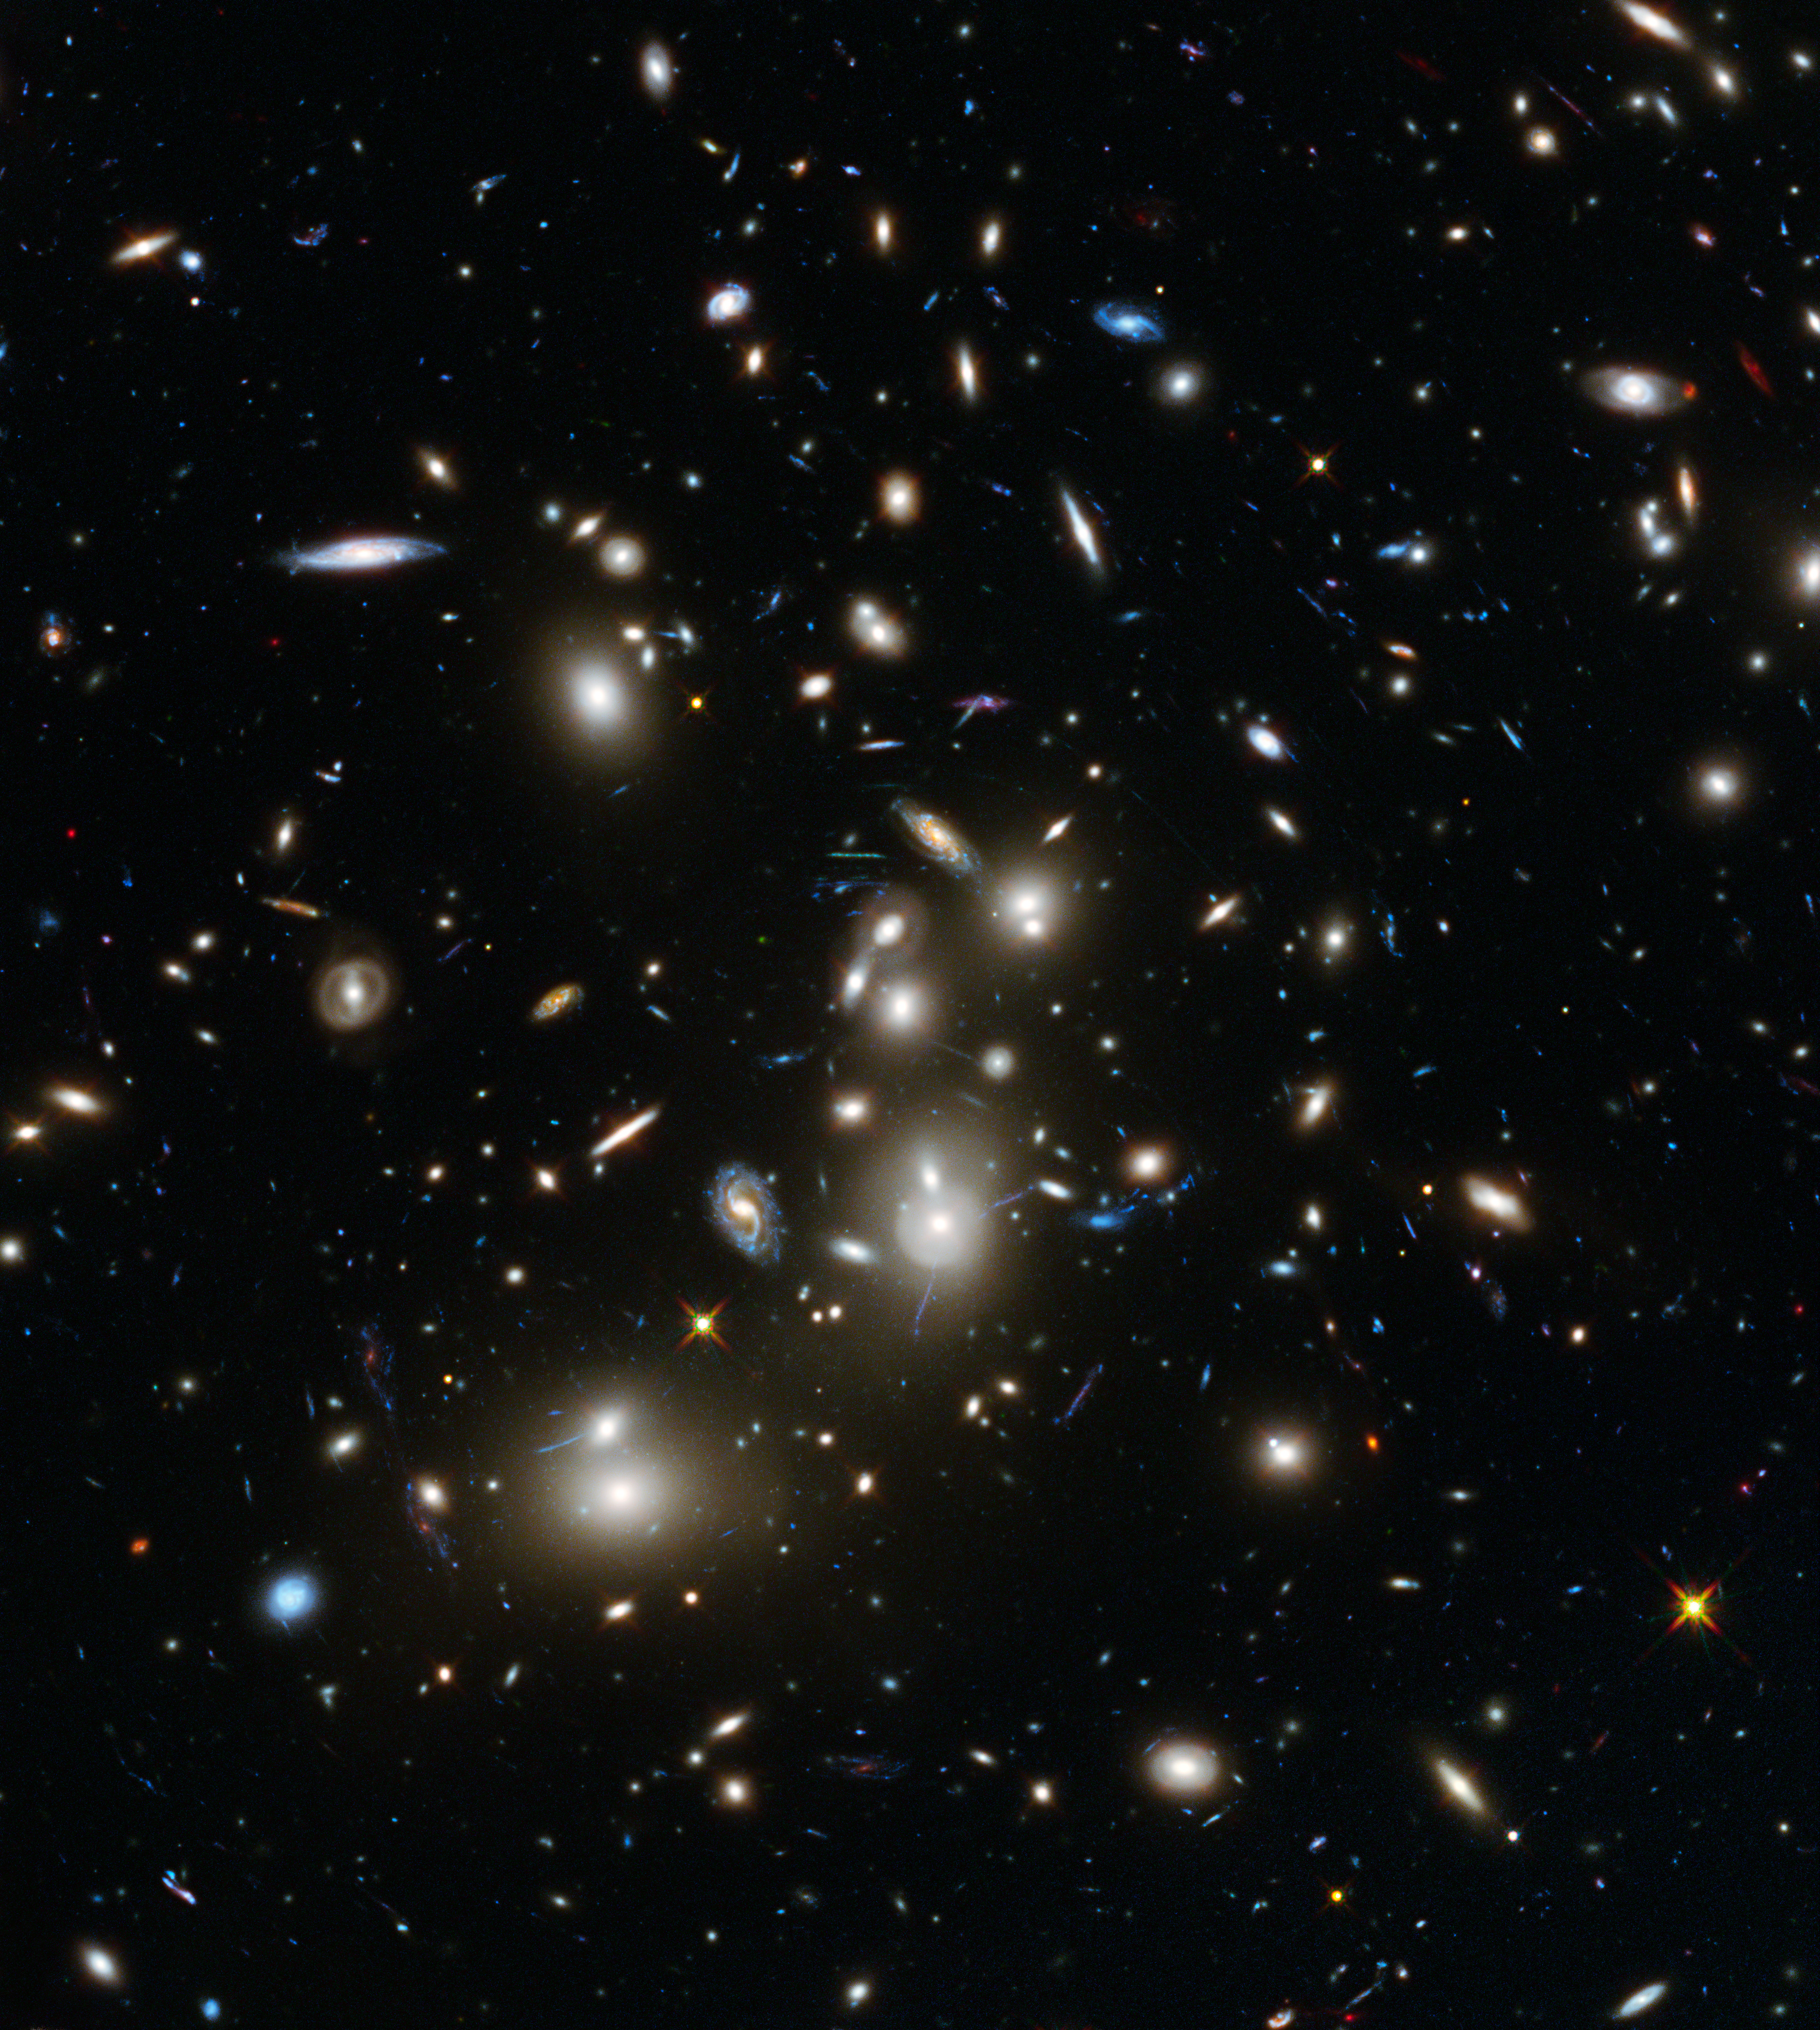 This image of Abell 2744 is the first to come from Hubble's Frontier Fields observing programme, which is using the magnifying power of enormous galaxy clusters to peer deep into the distant Universe. Abell 2744, nicknamed Pandora's Cluster, is thought to have a very violent history, having formed from a cosmic pile-up of multiple galaxy clusters. Abell 2744 is the first of six targets for an observing programme known as Frontier Fields. This three-year, 840-orbit programme will yield our deepest views of the Universe to date, using the power of Hubble to explore more distant regions of space than could otherwise be seen, by observing gravitational lensing effects around six different galaxy clusters.